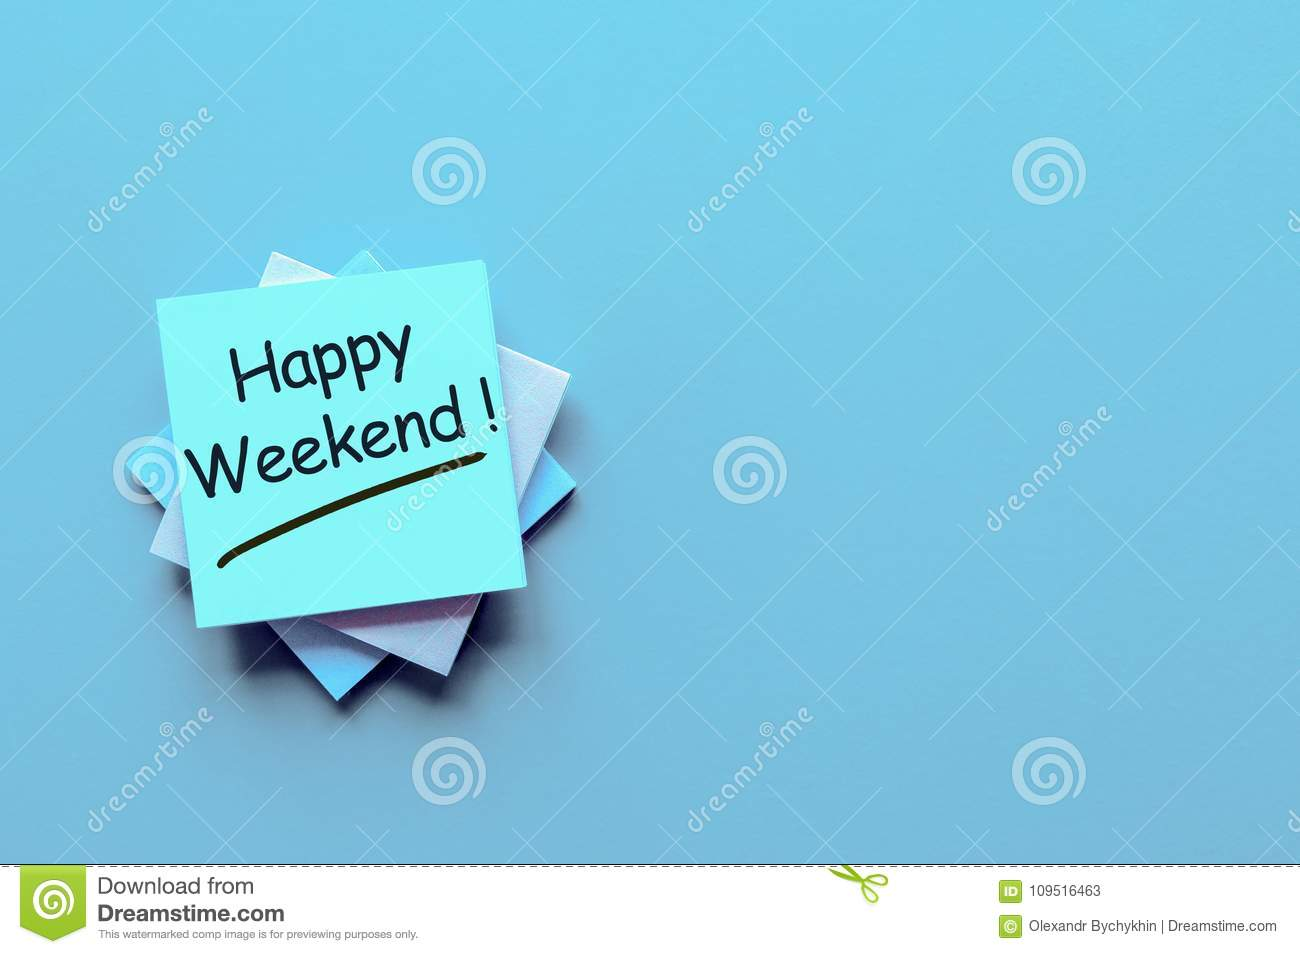 Happy Weekend Note With A Wish To Have A Good Rest And Have Fun On